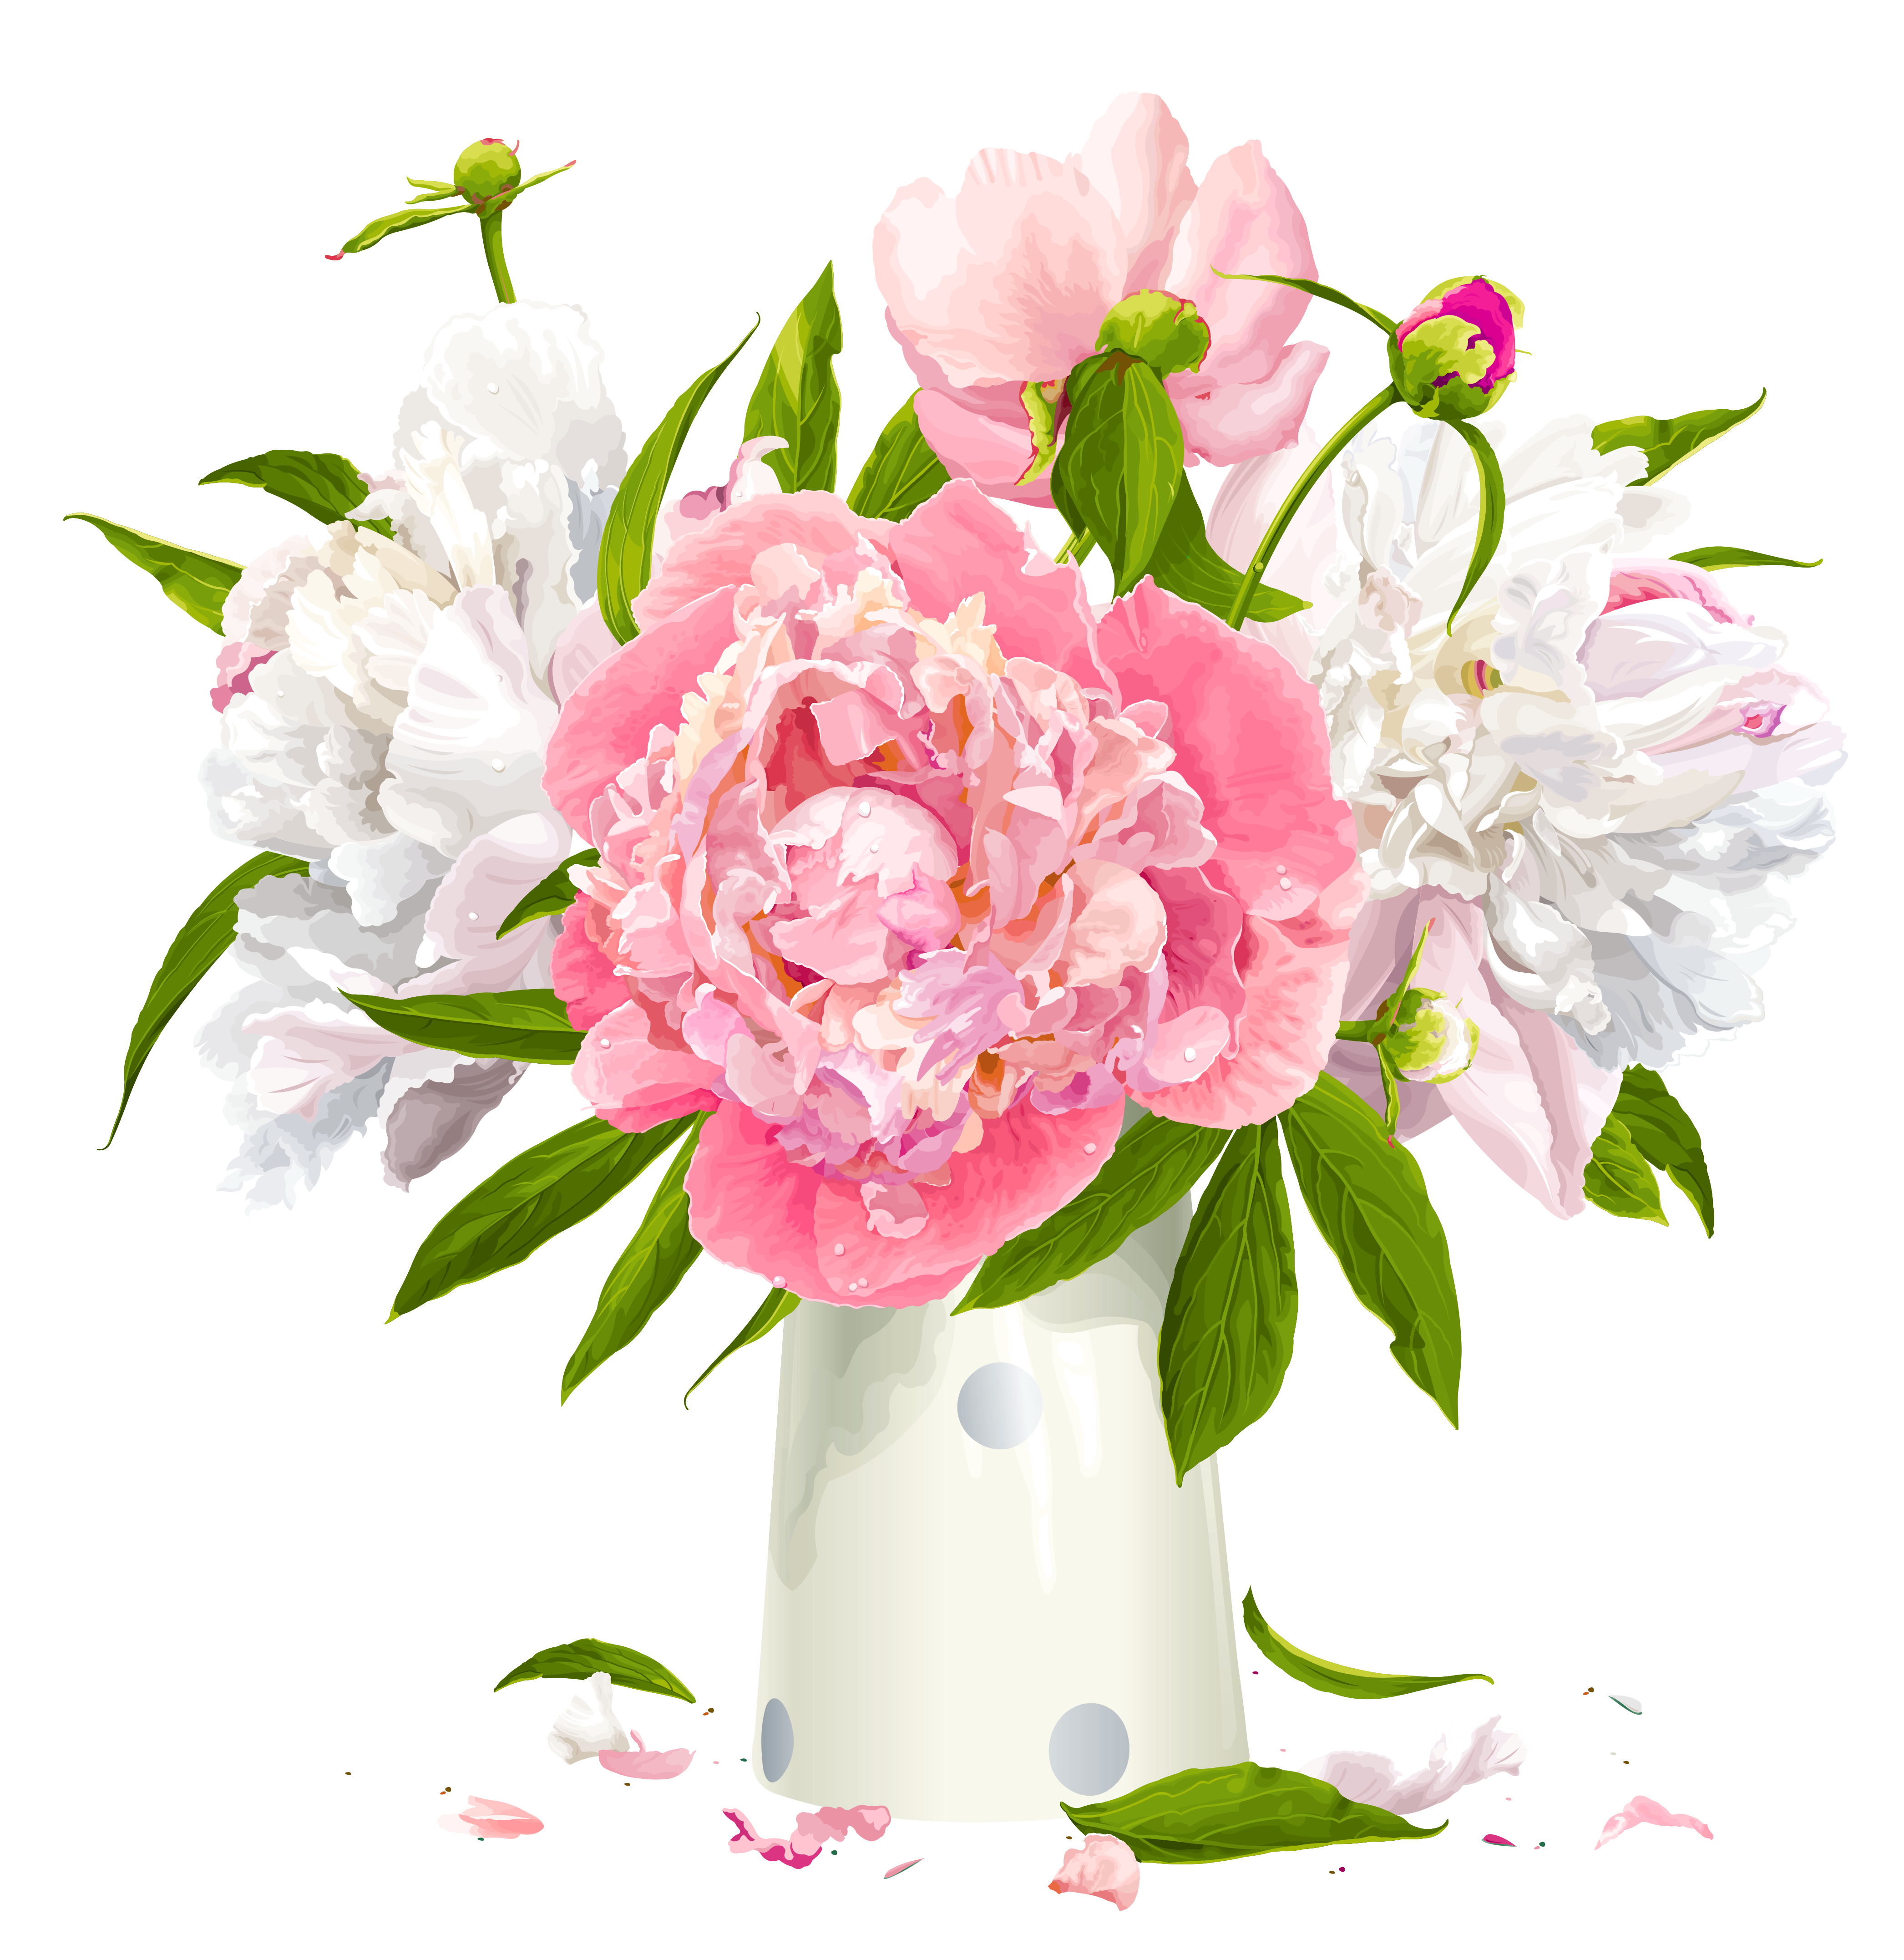 Carnation flower clipart black and white download Peony cliparts   Printable images   Pinterest   Peony, Flower ... black and white download